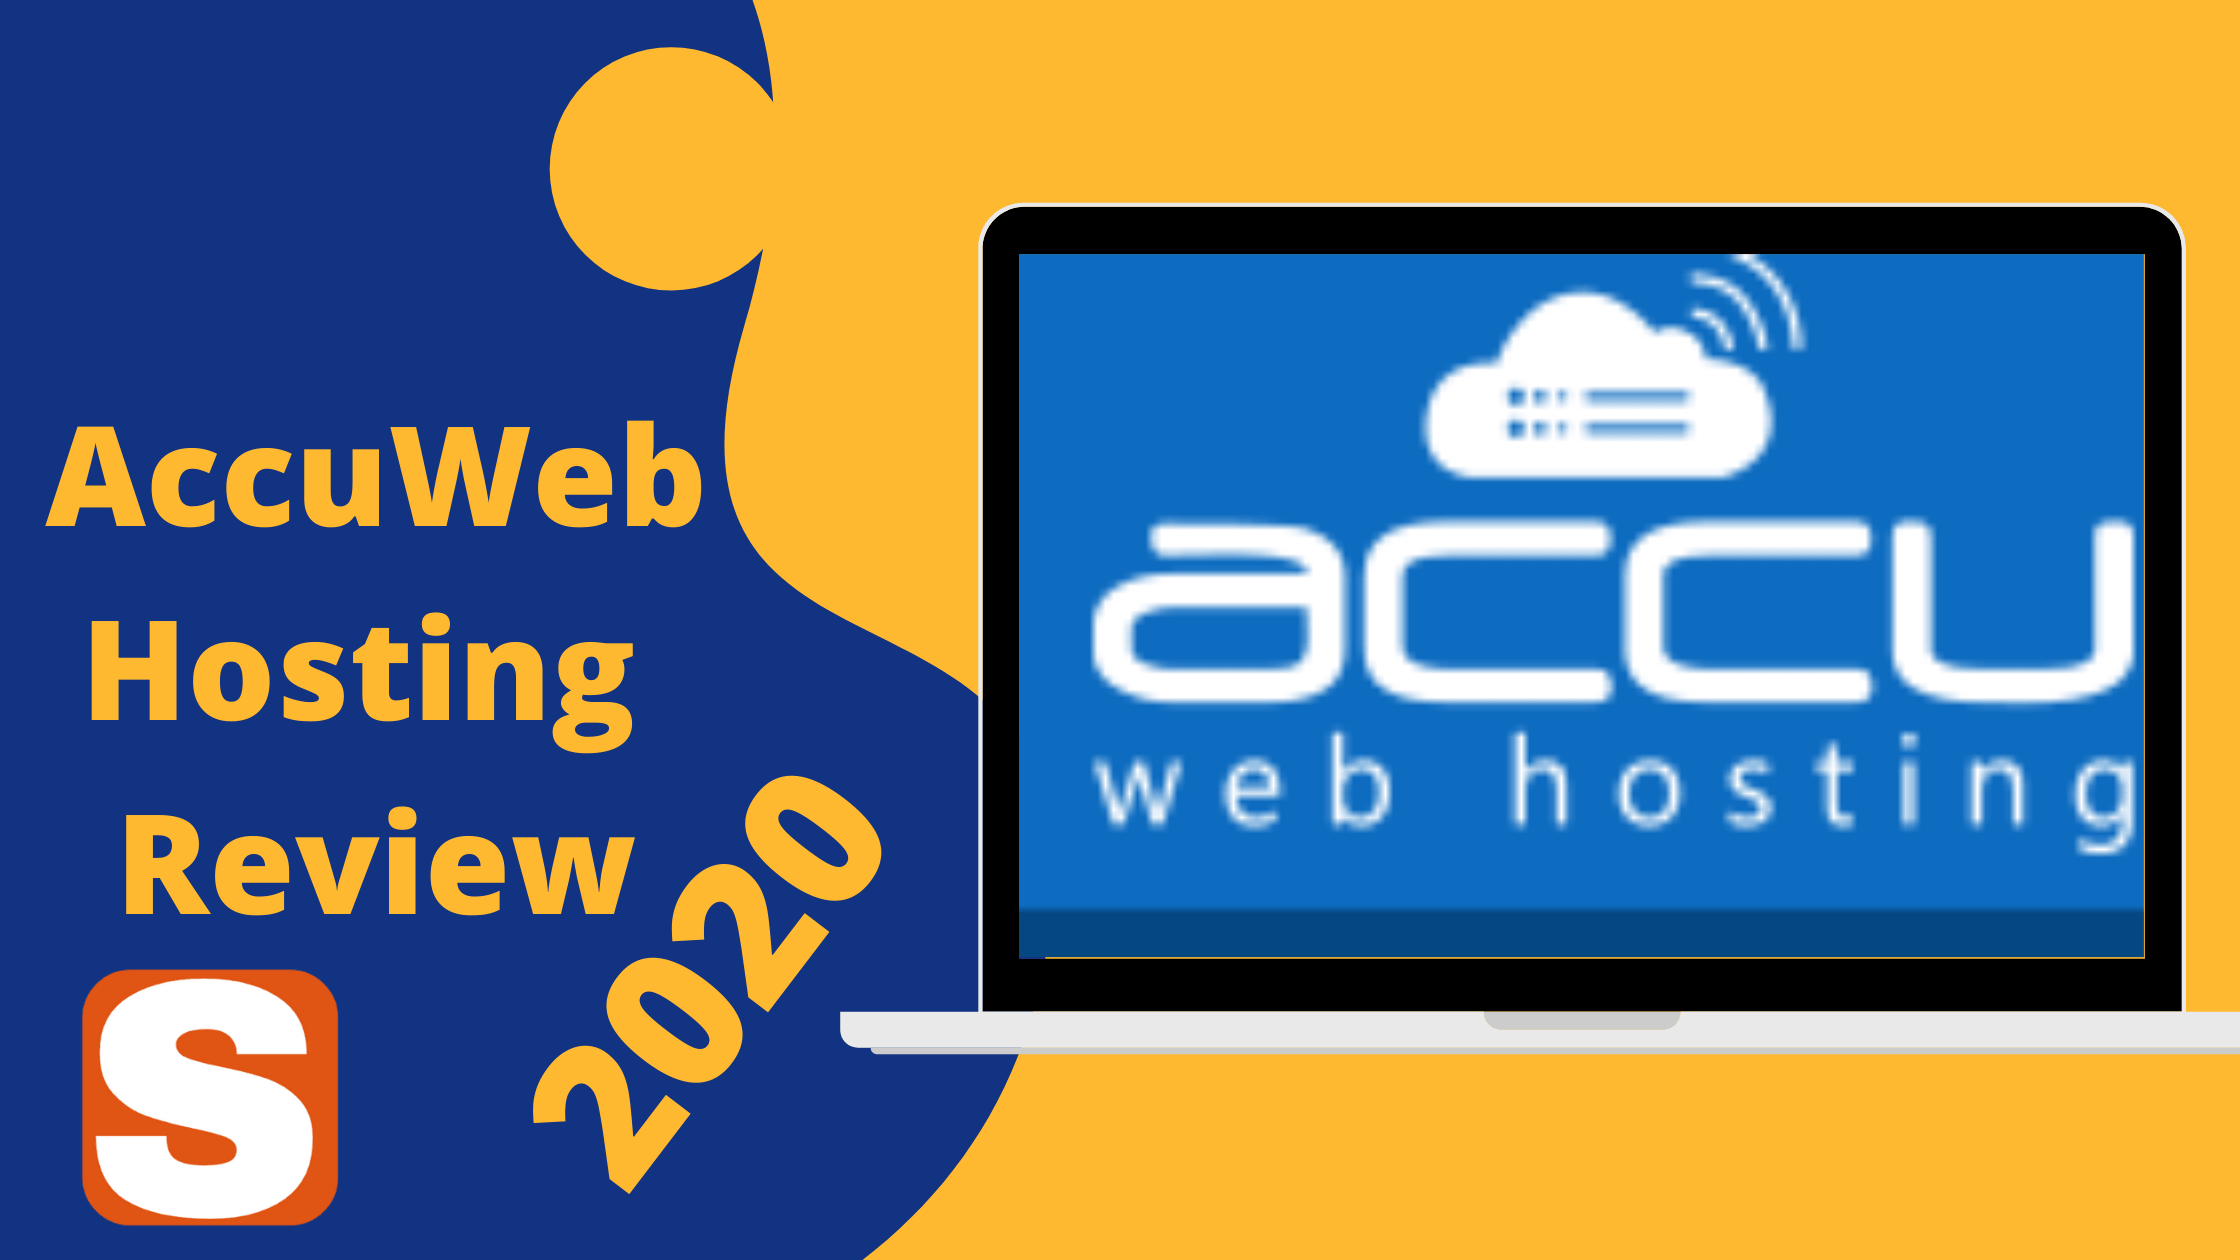 AccuWeb Hosting Review 2020